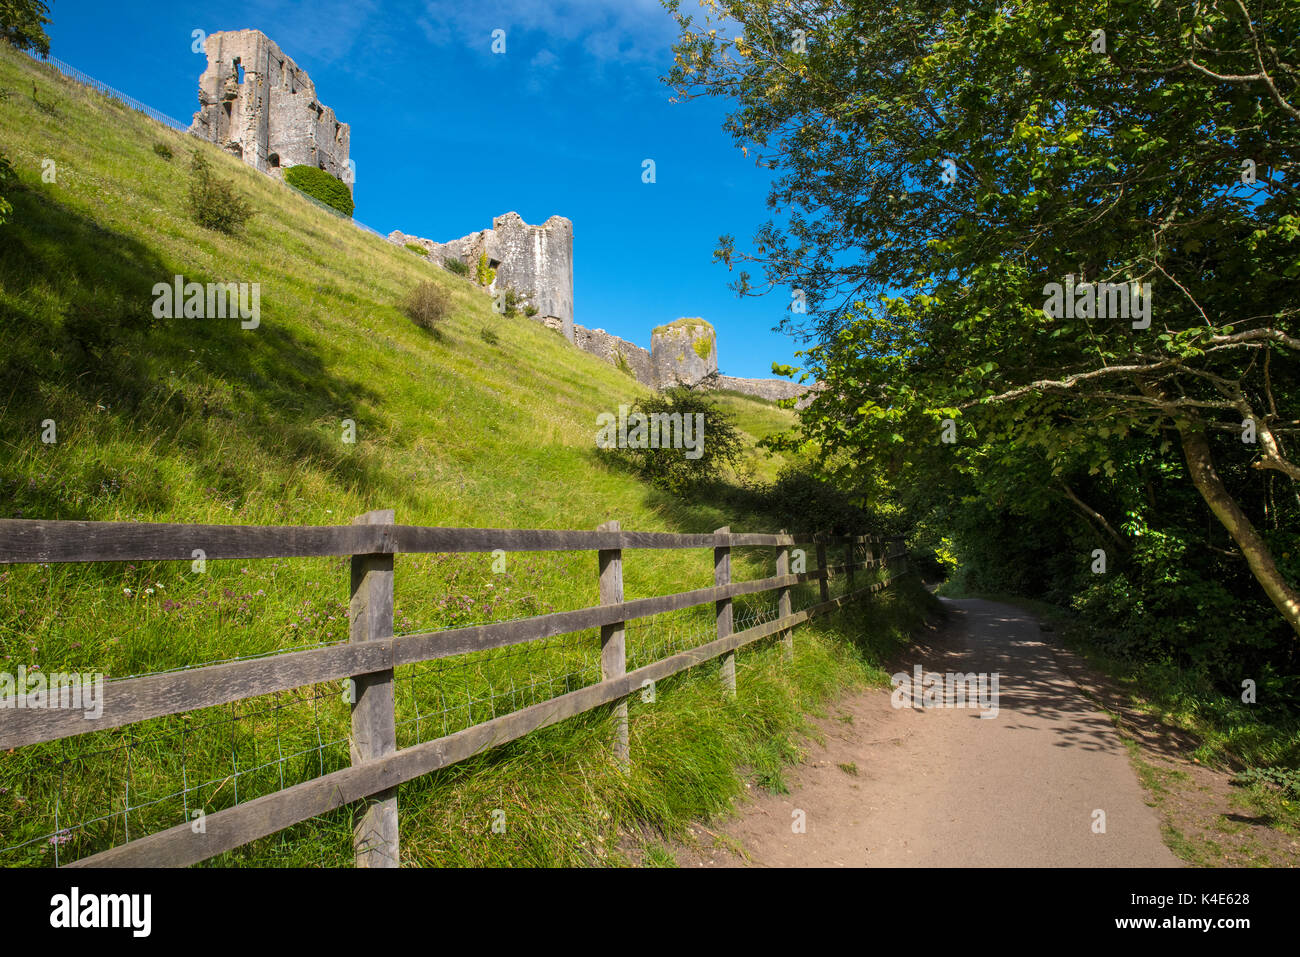 A woodland walk passing by the remains of Corfe Castle in the beautiful county of Dorset, UK. - Stock Image